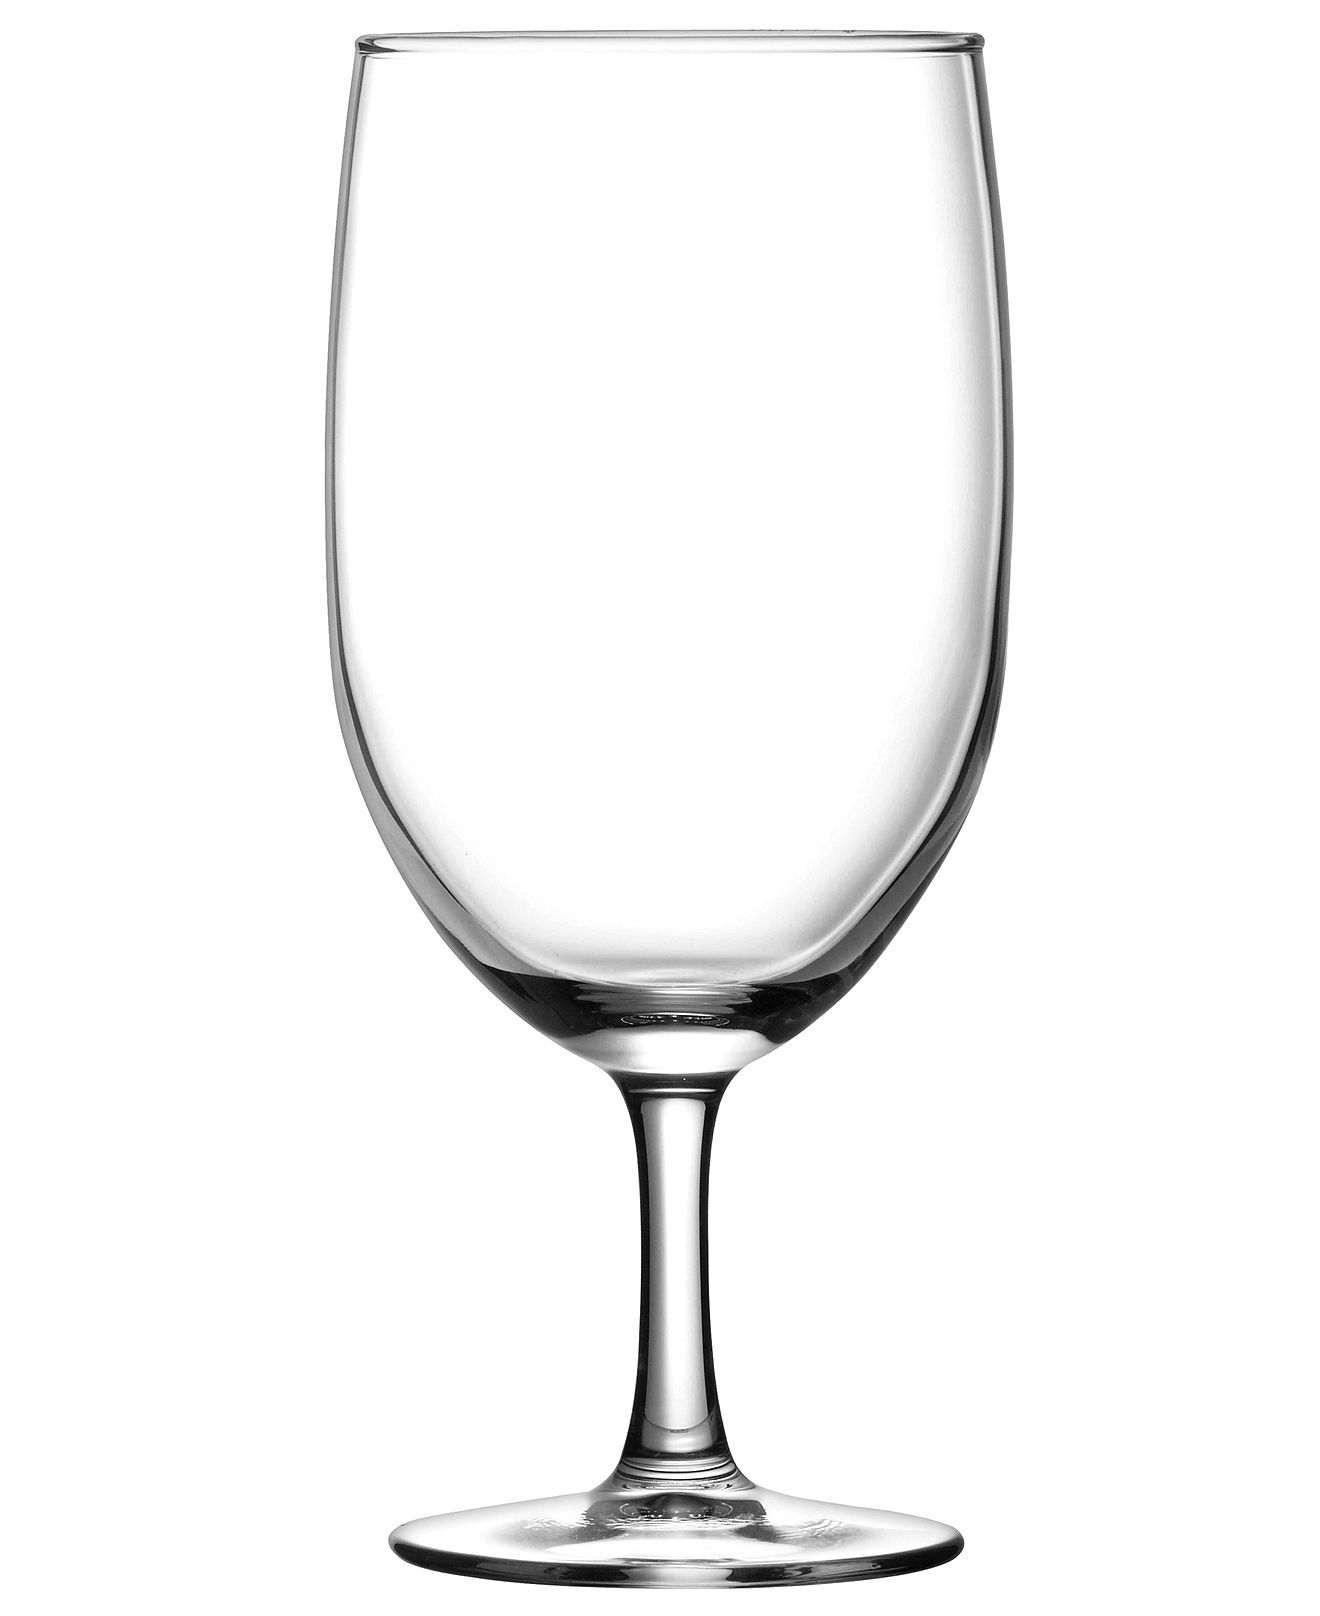 bfba3069eab Luminarc Glassware, Set of 12 Alto Iced Beverage Glasses - Glassware ...